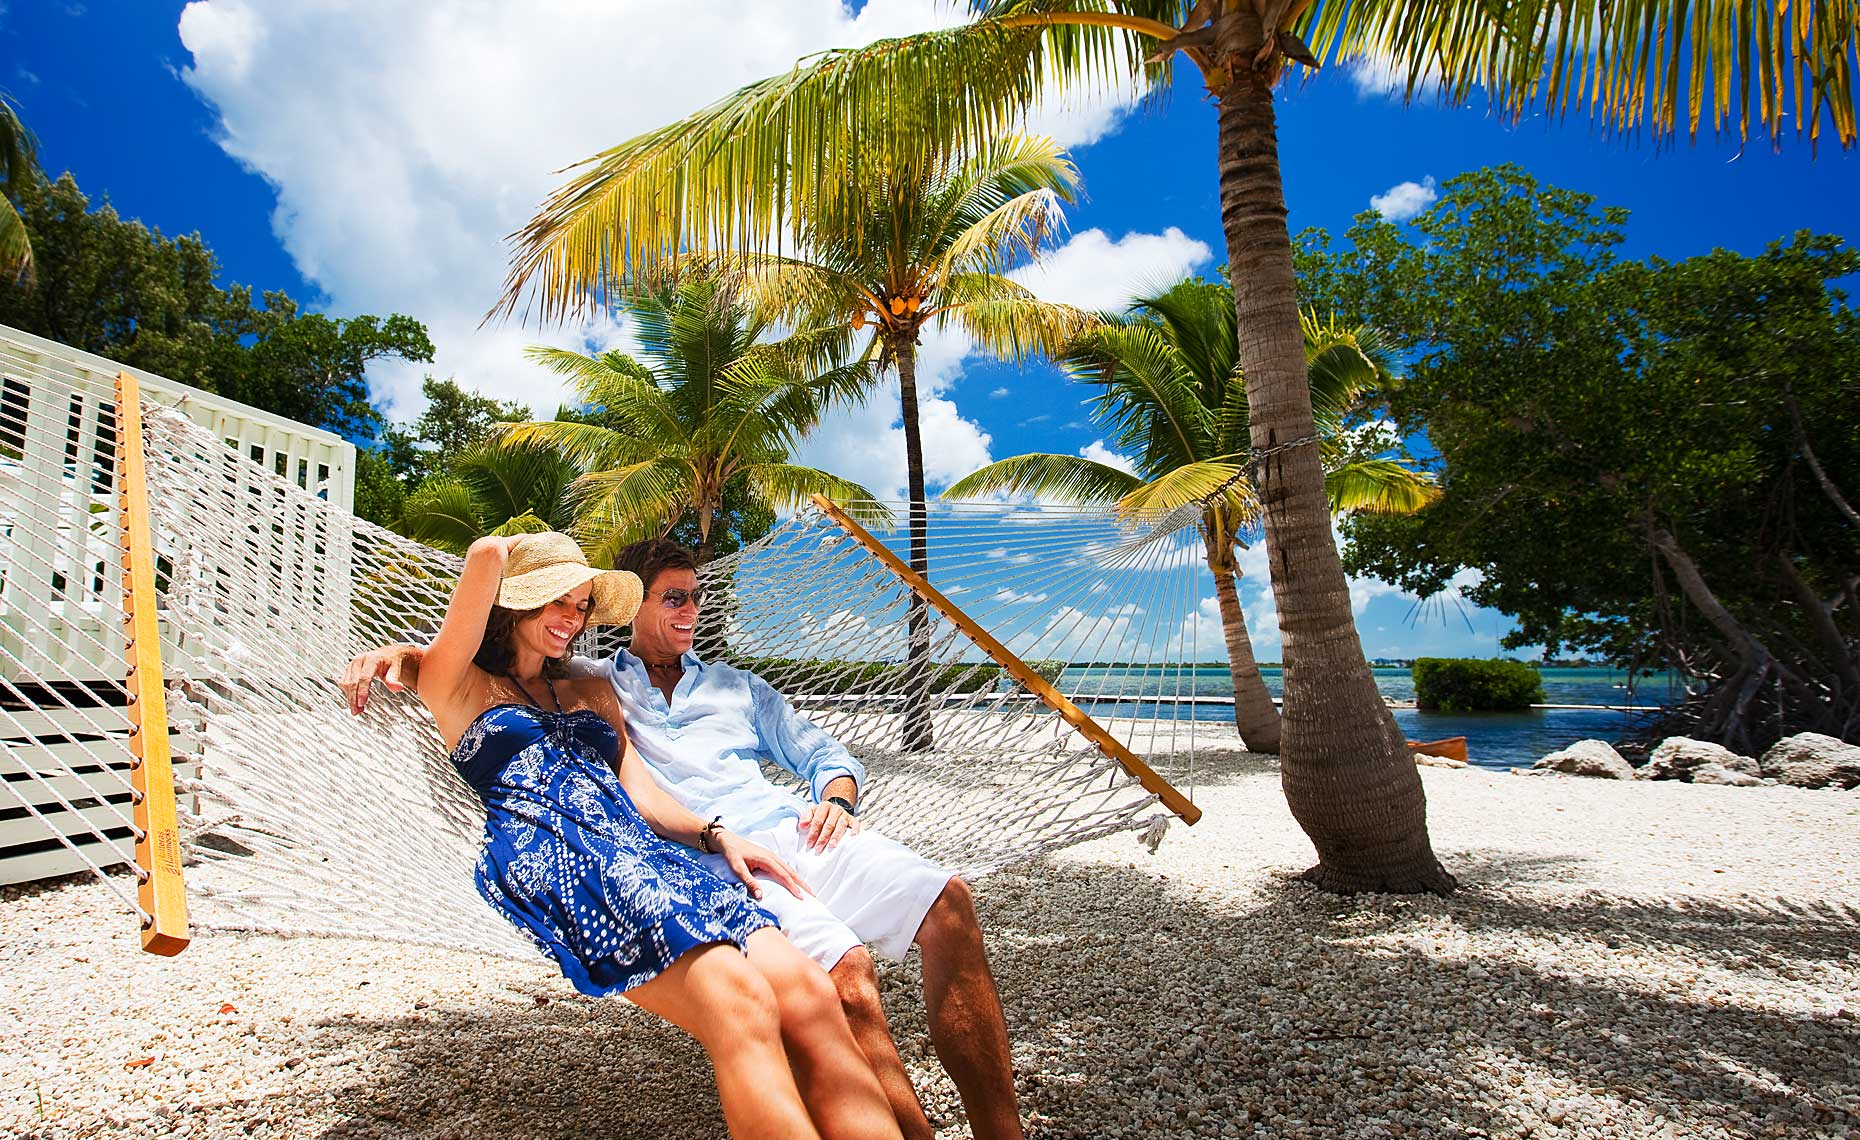 Couple Relaxing in Hammock Florida Keys.